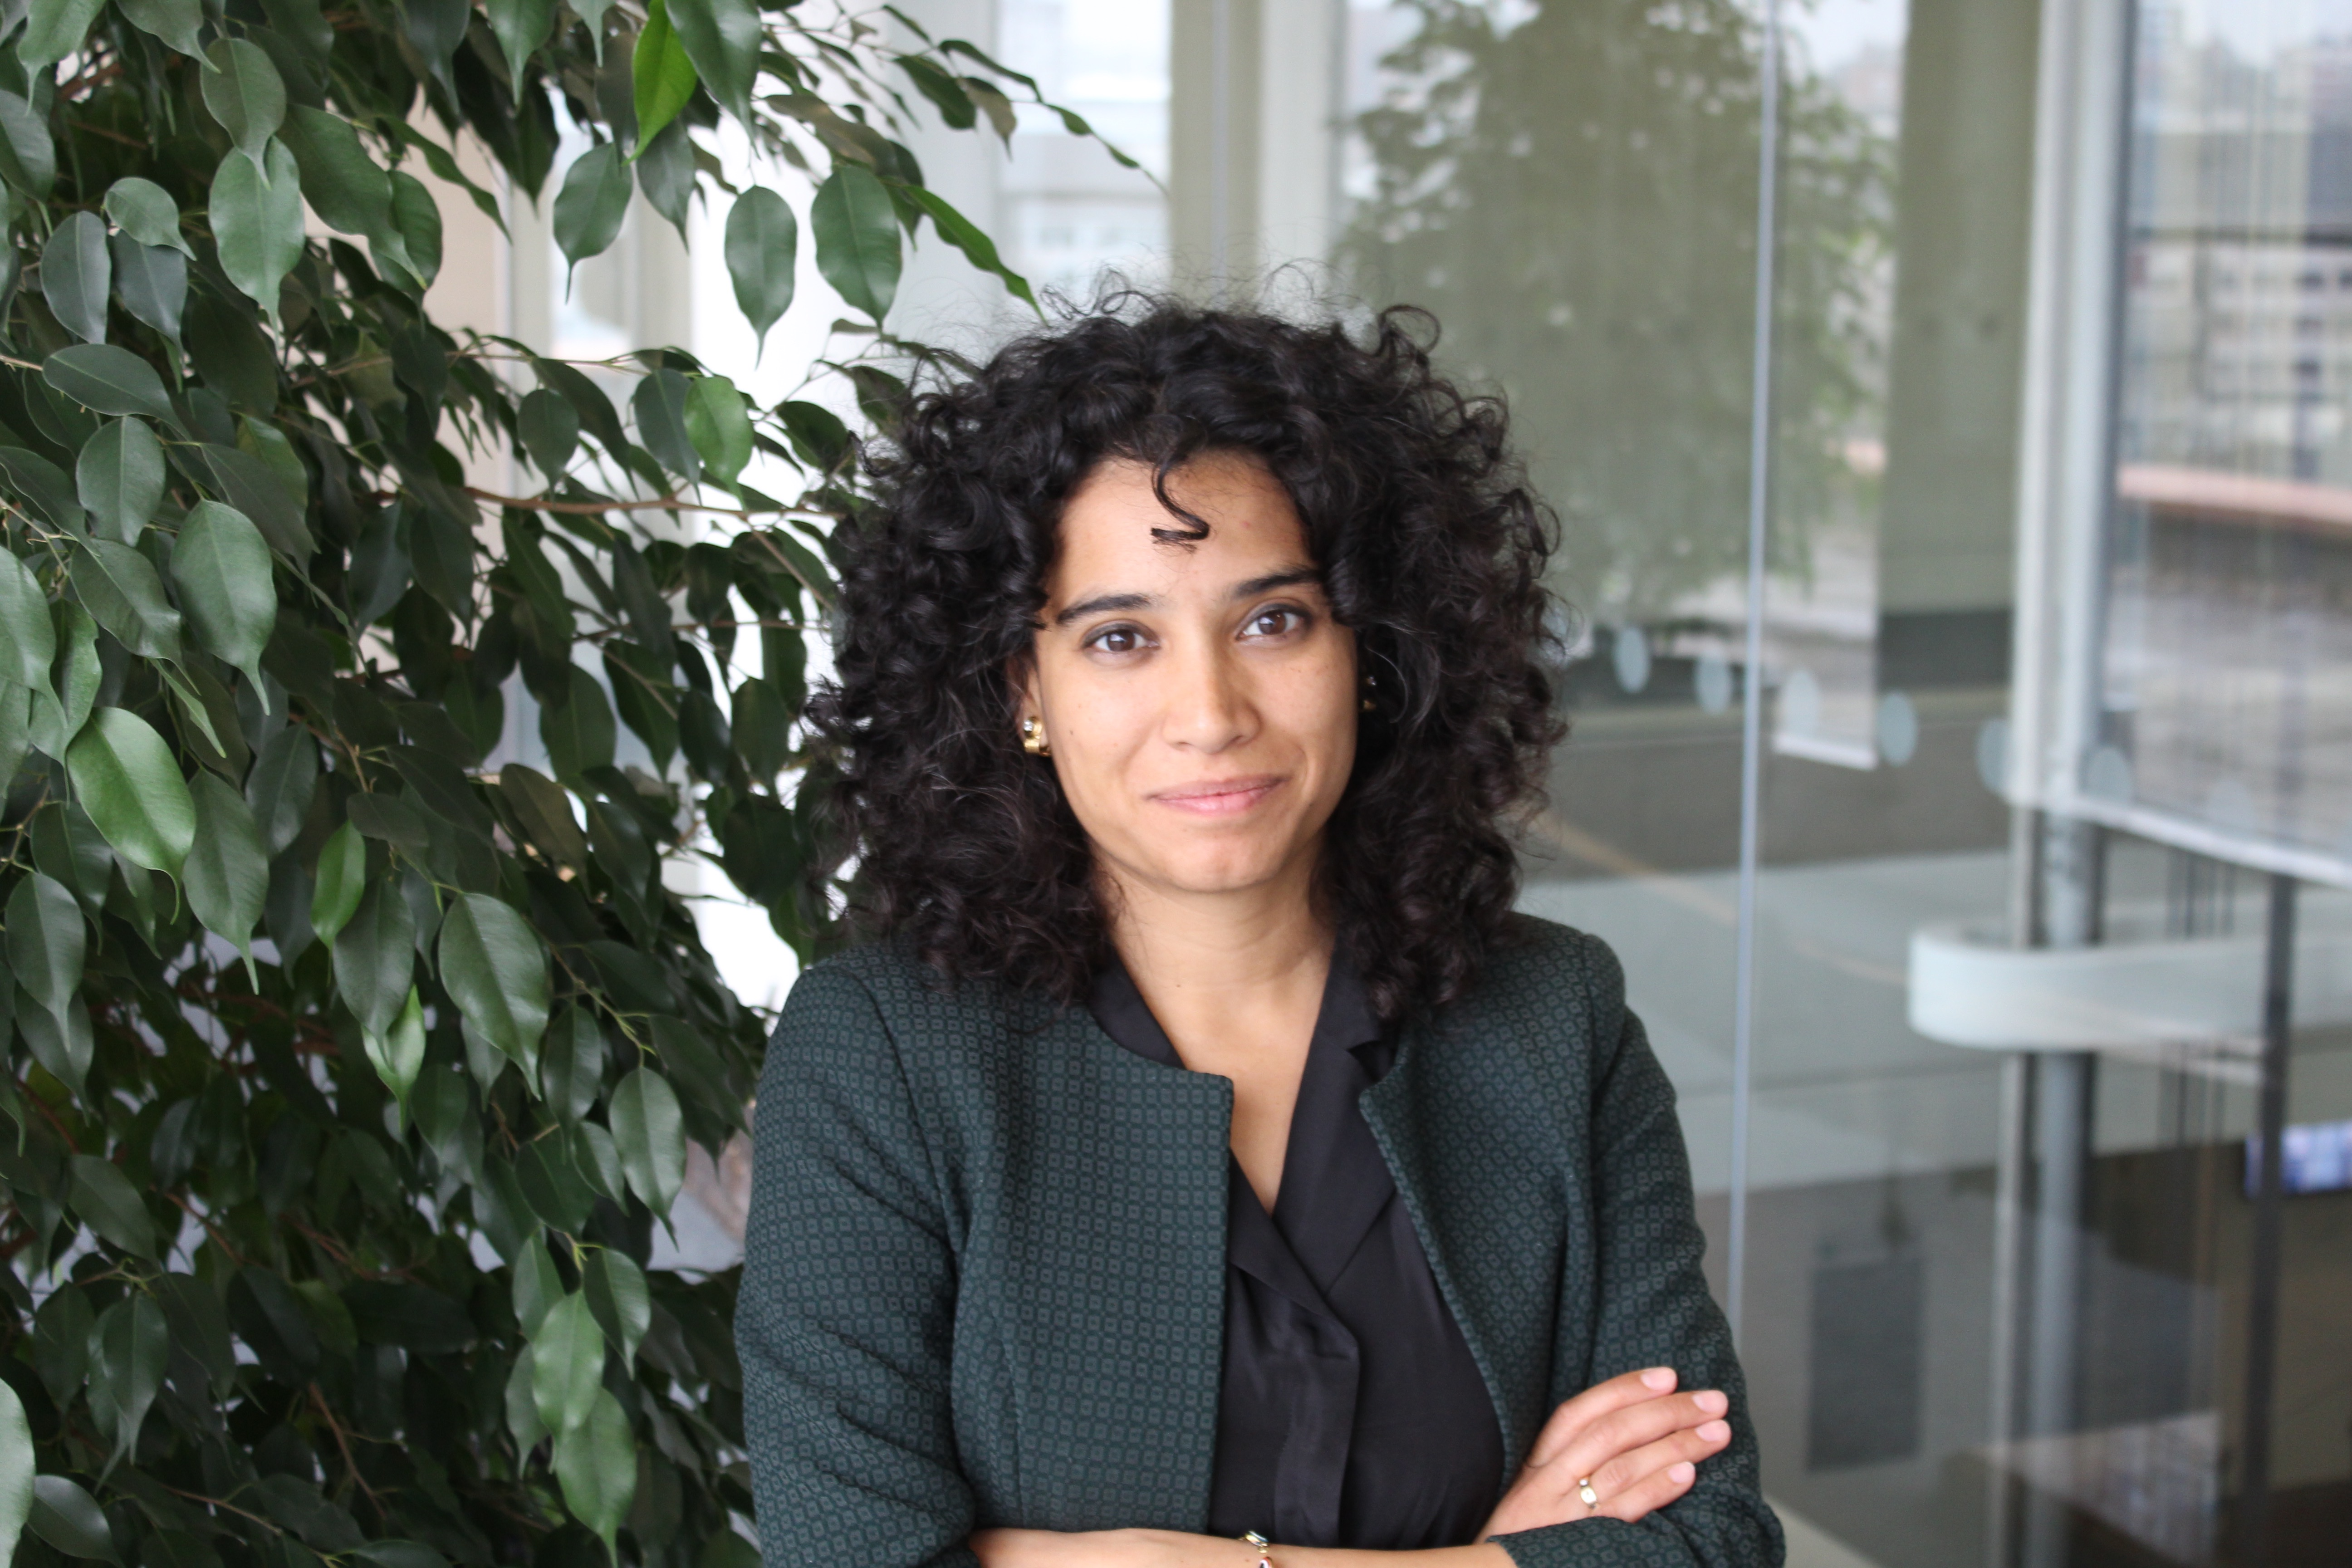 RECRUITMENT DRIVE: Anjuli Pandit, UK head of corporate sustainability/primary sustainability manager at BNP Paribas, wants to see more women working in the sector